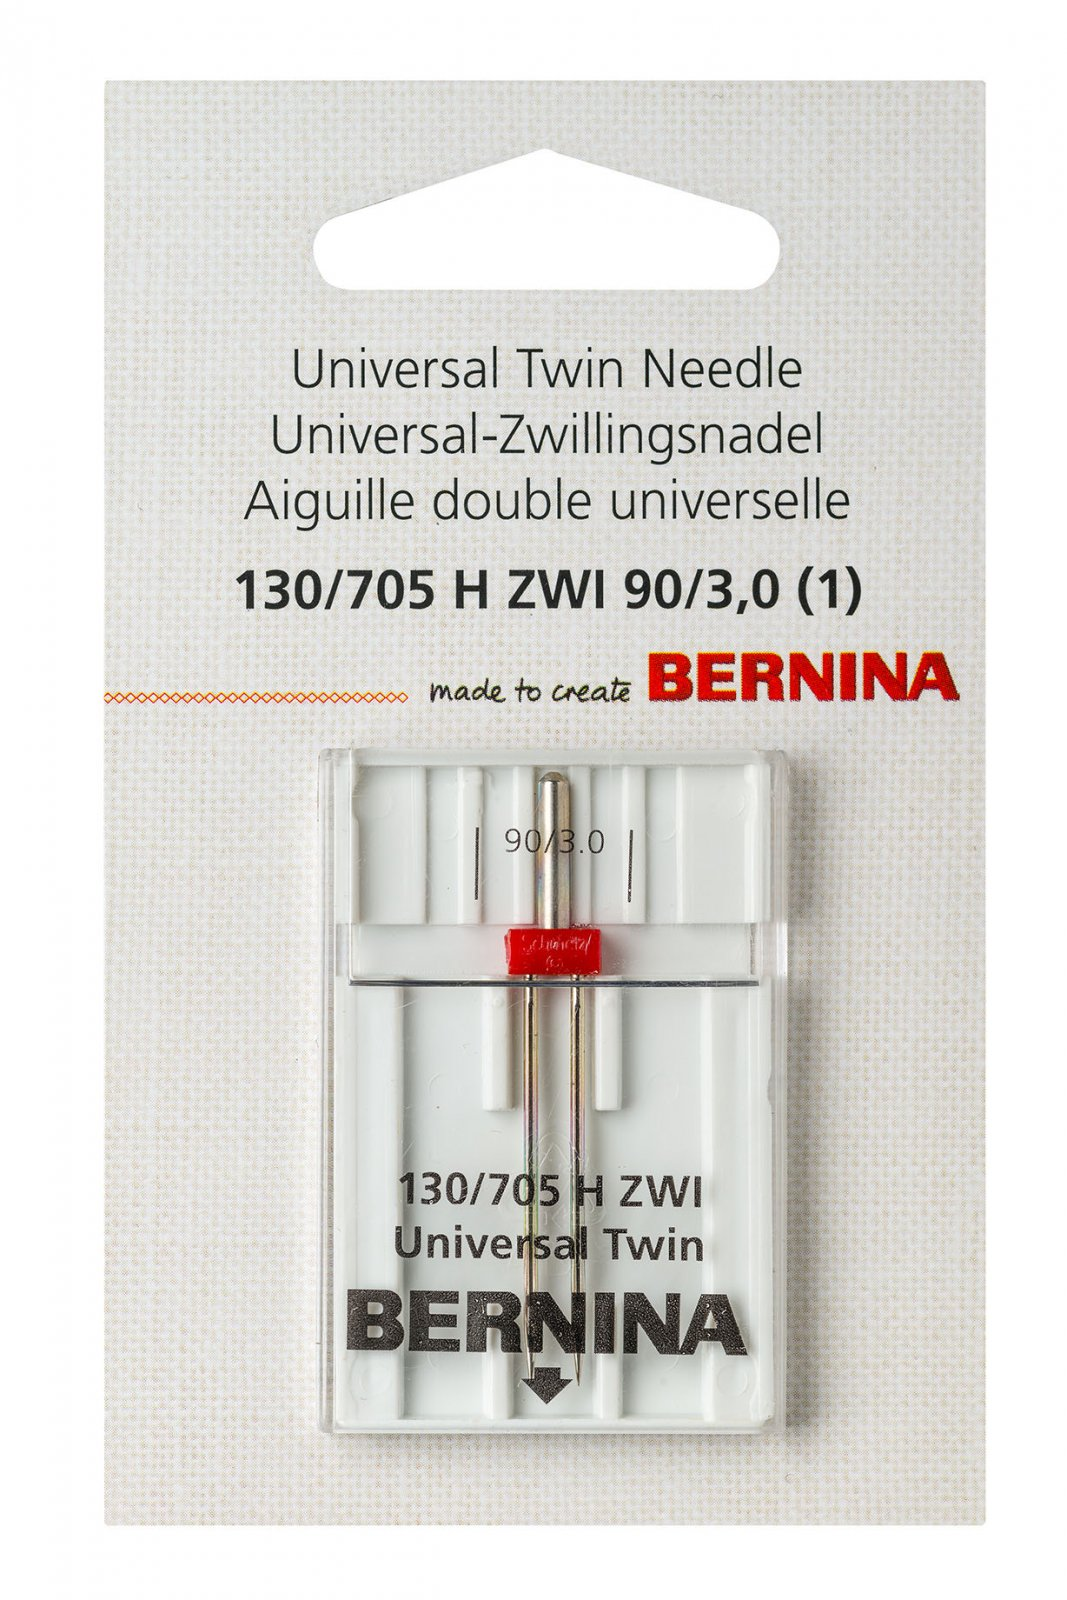 Bernina Universal Twin Needle 130/705H ZWI Size 100/6.0+